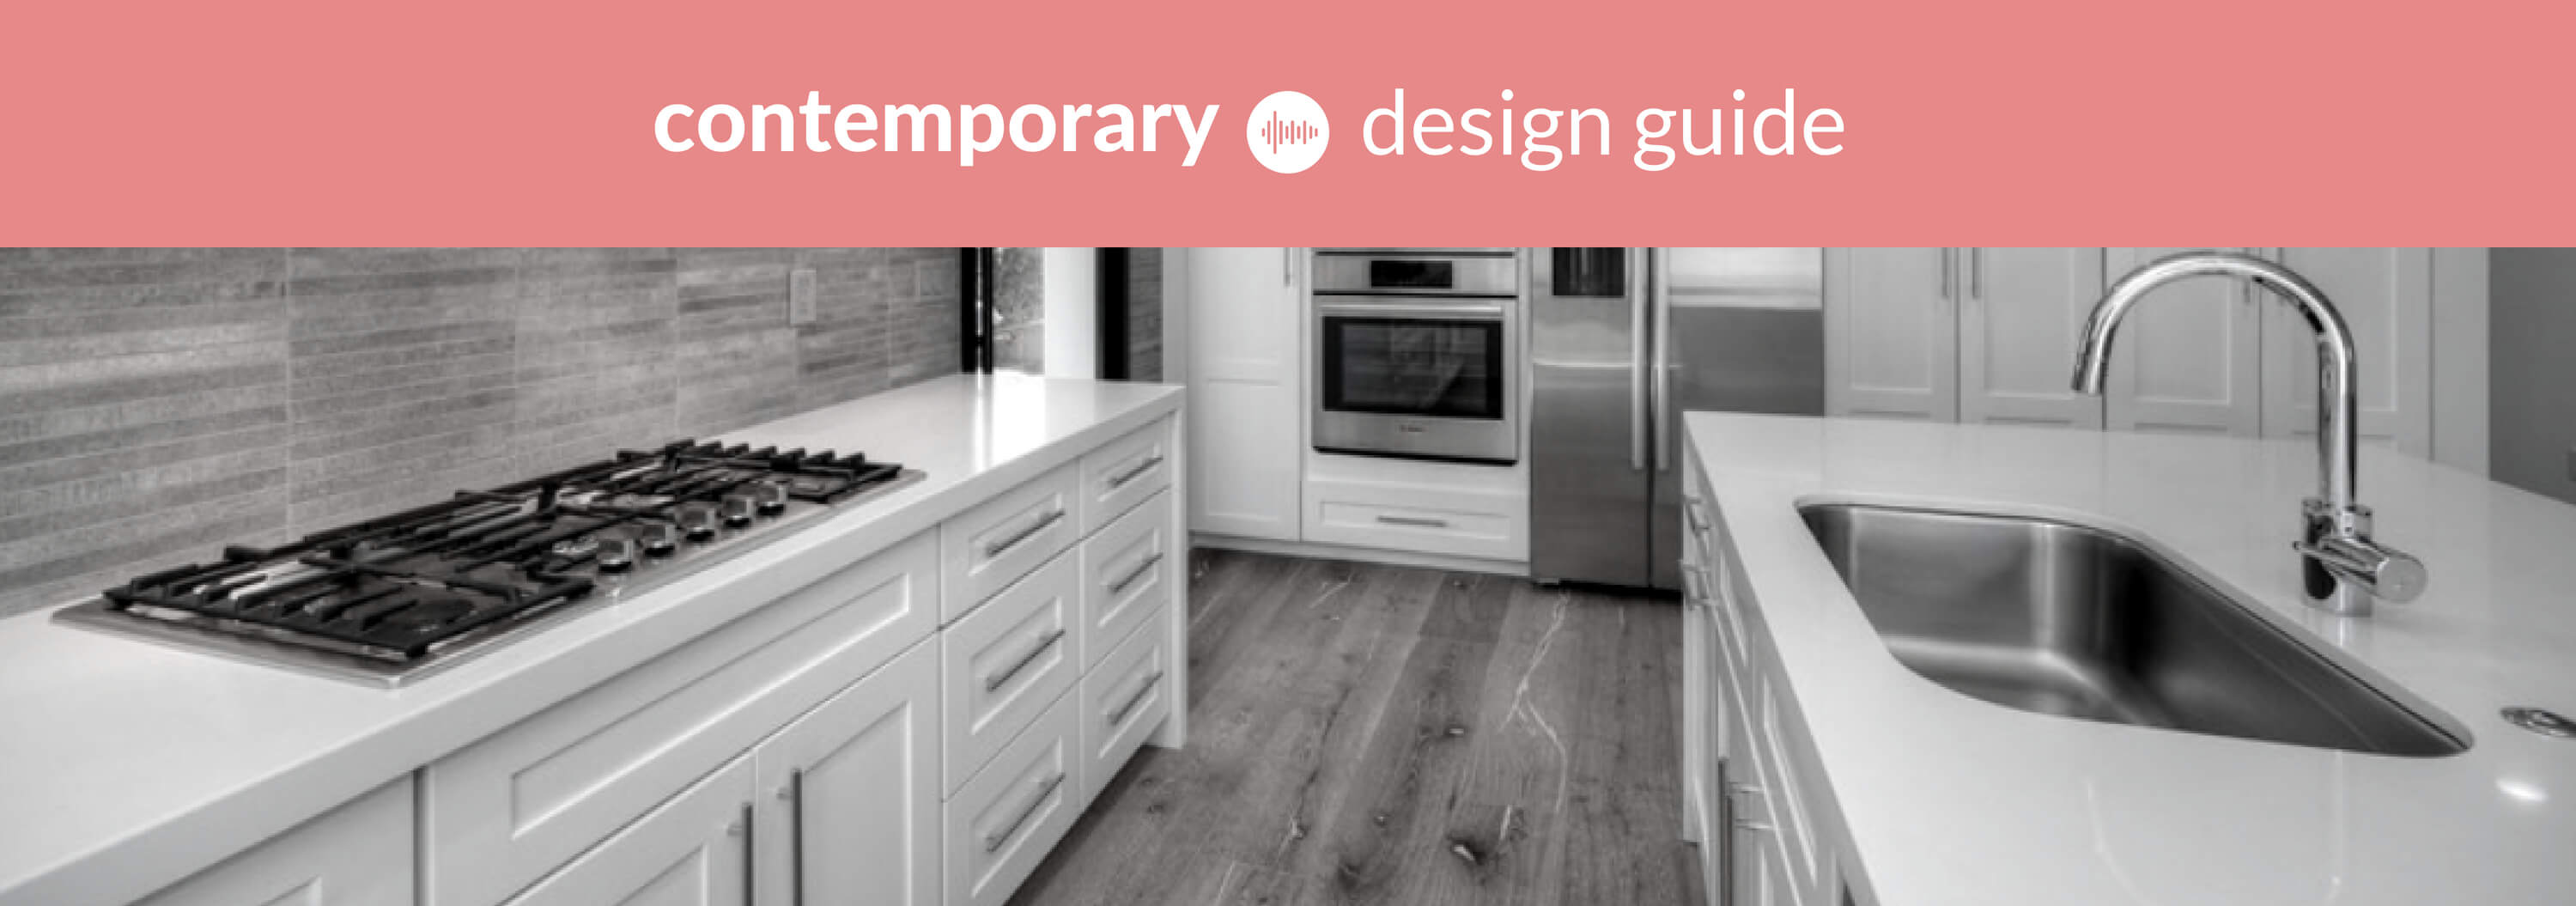 Contemporary Kitchens Cabinetry 2020 Design Guide